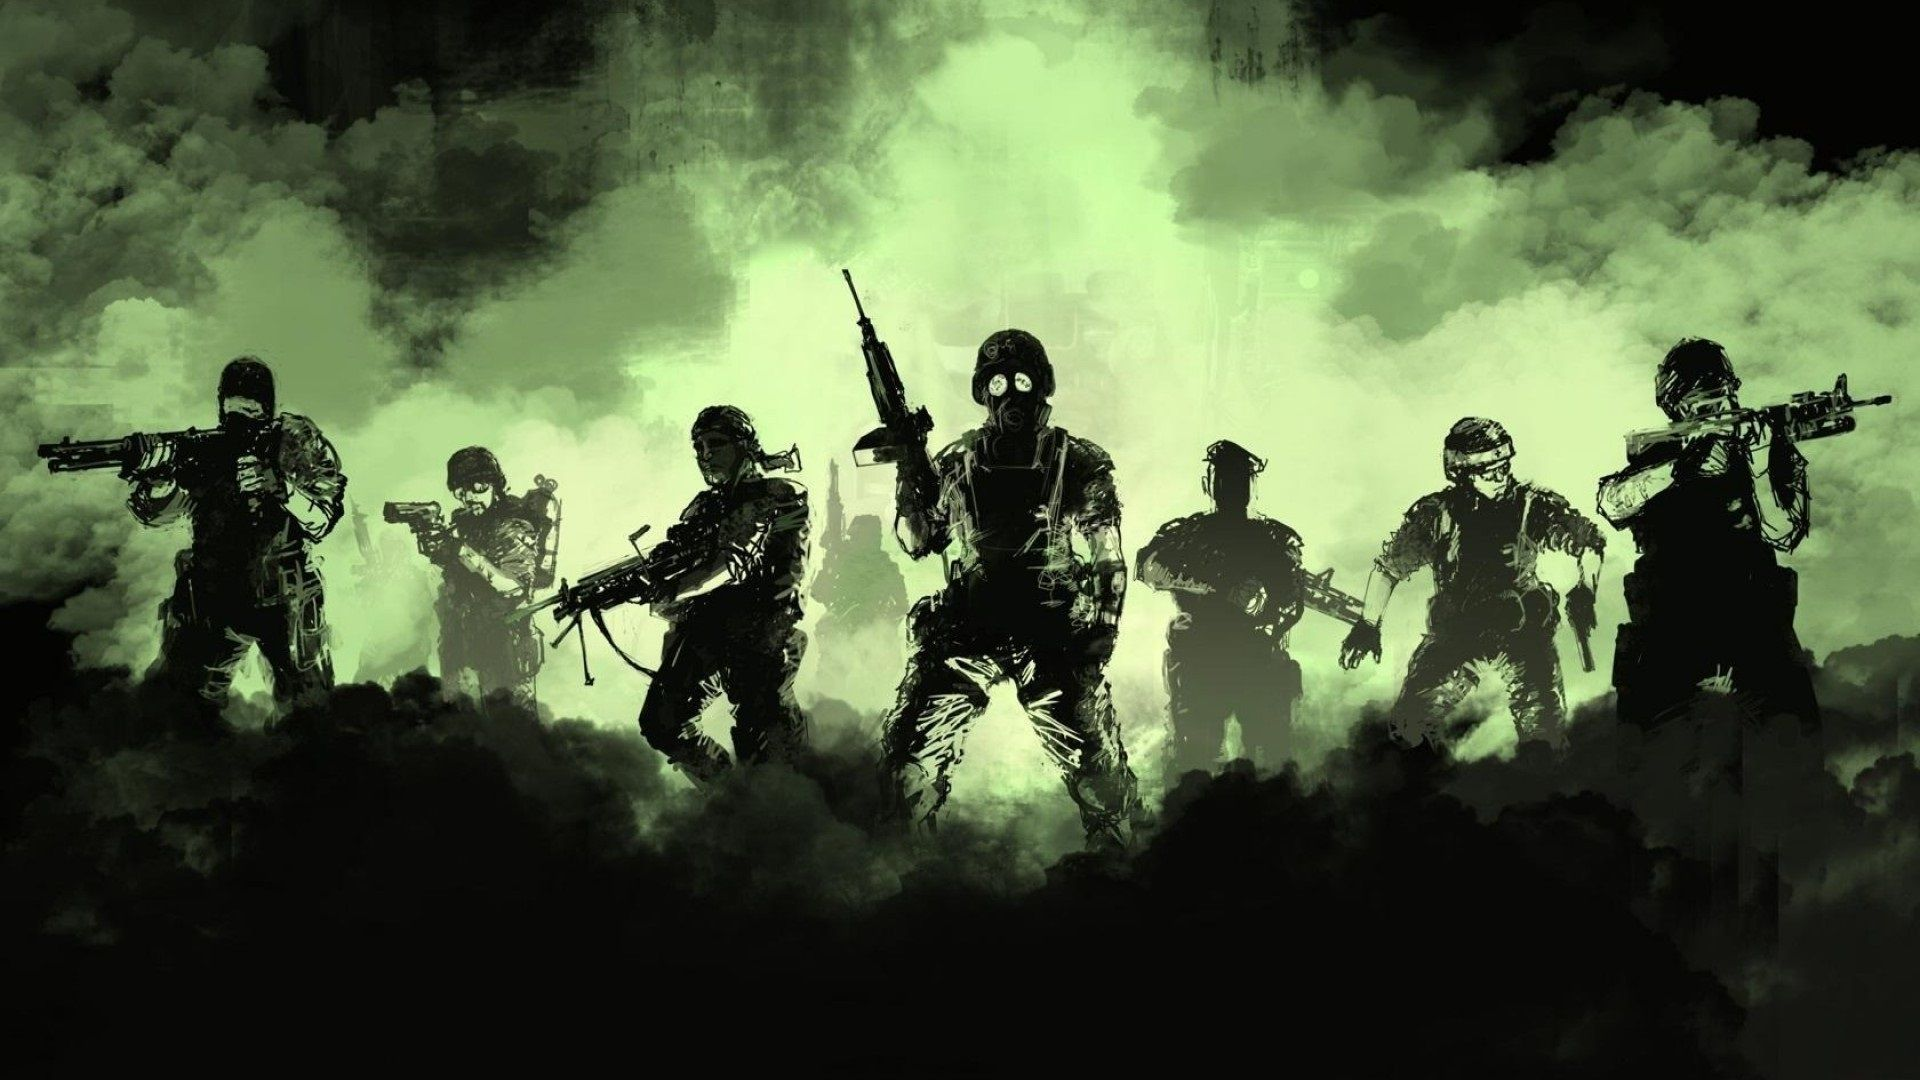 Hd Army Wallpapers And Background Images For Download In